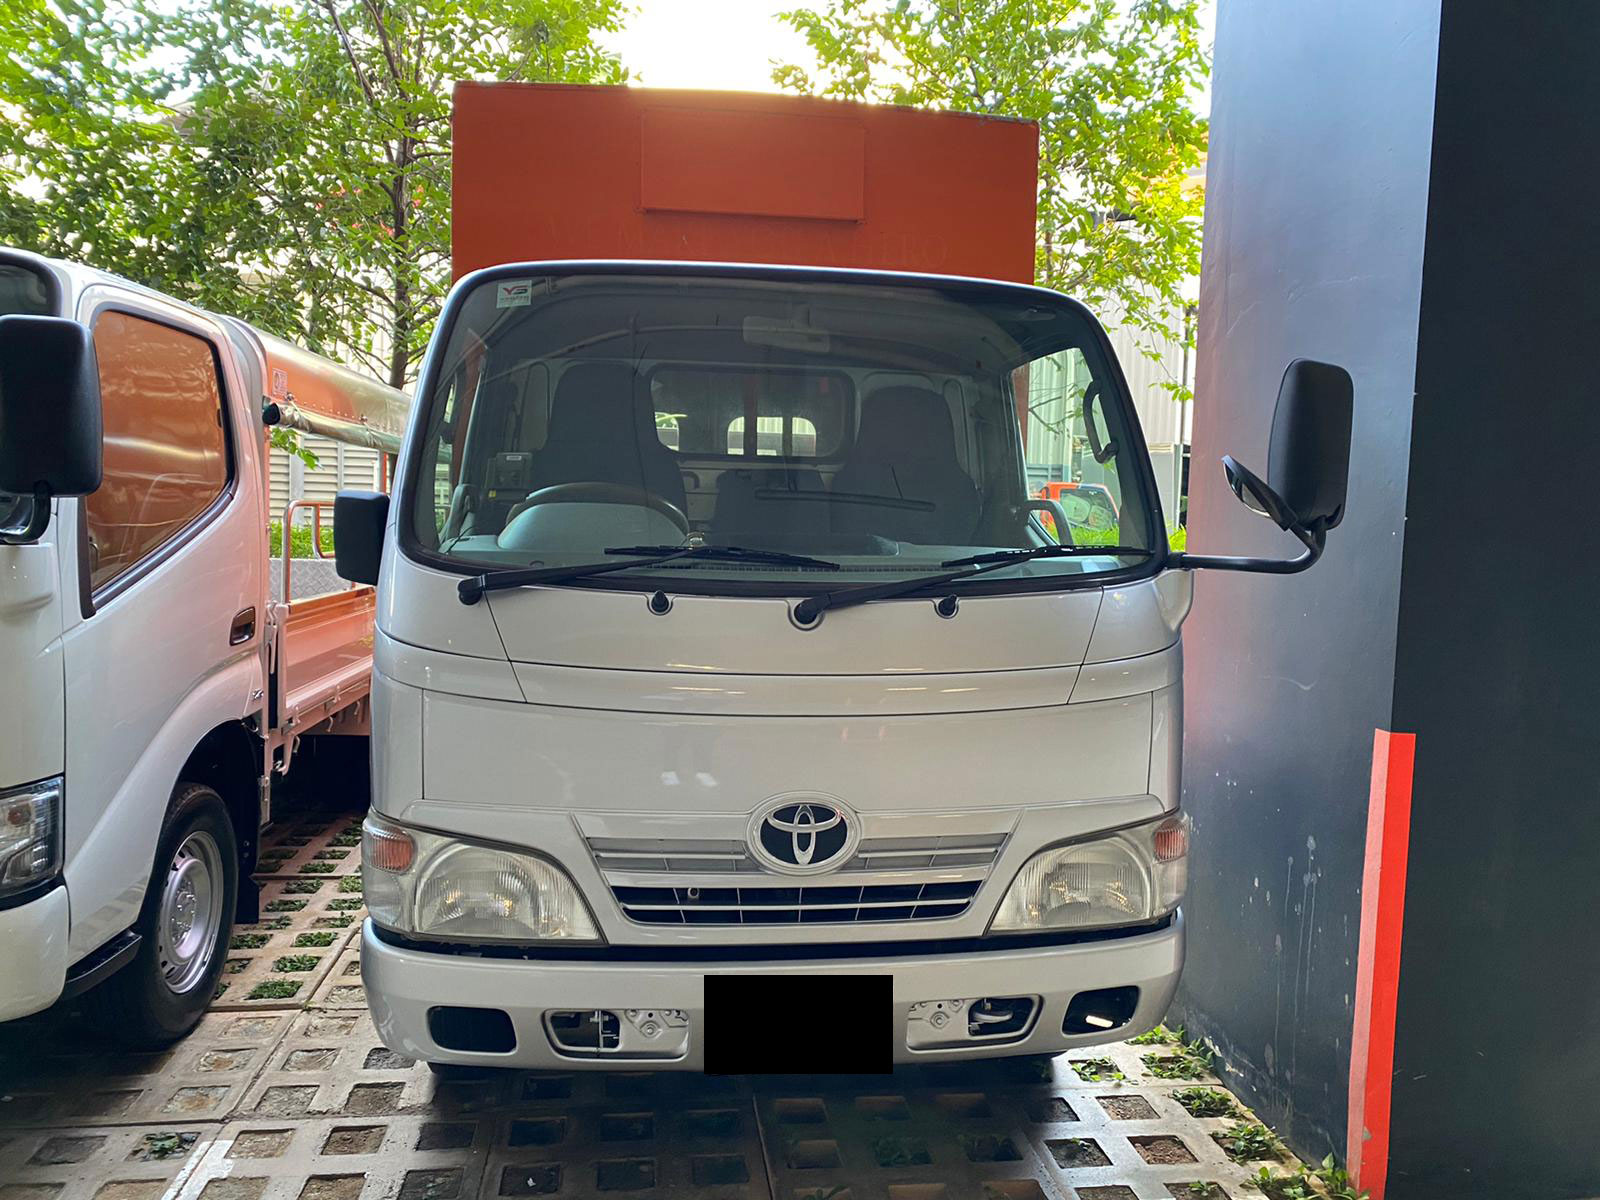 10FT Toyota Dyna With Box And Tailgate (For Lease)